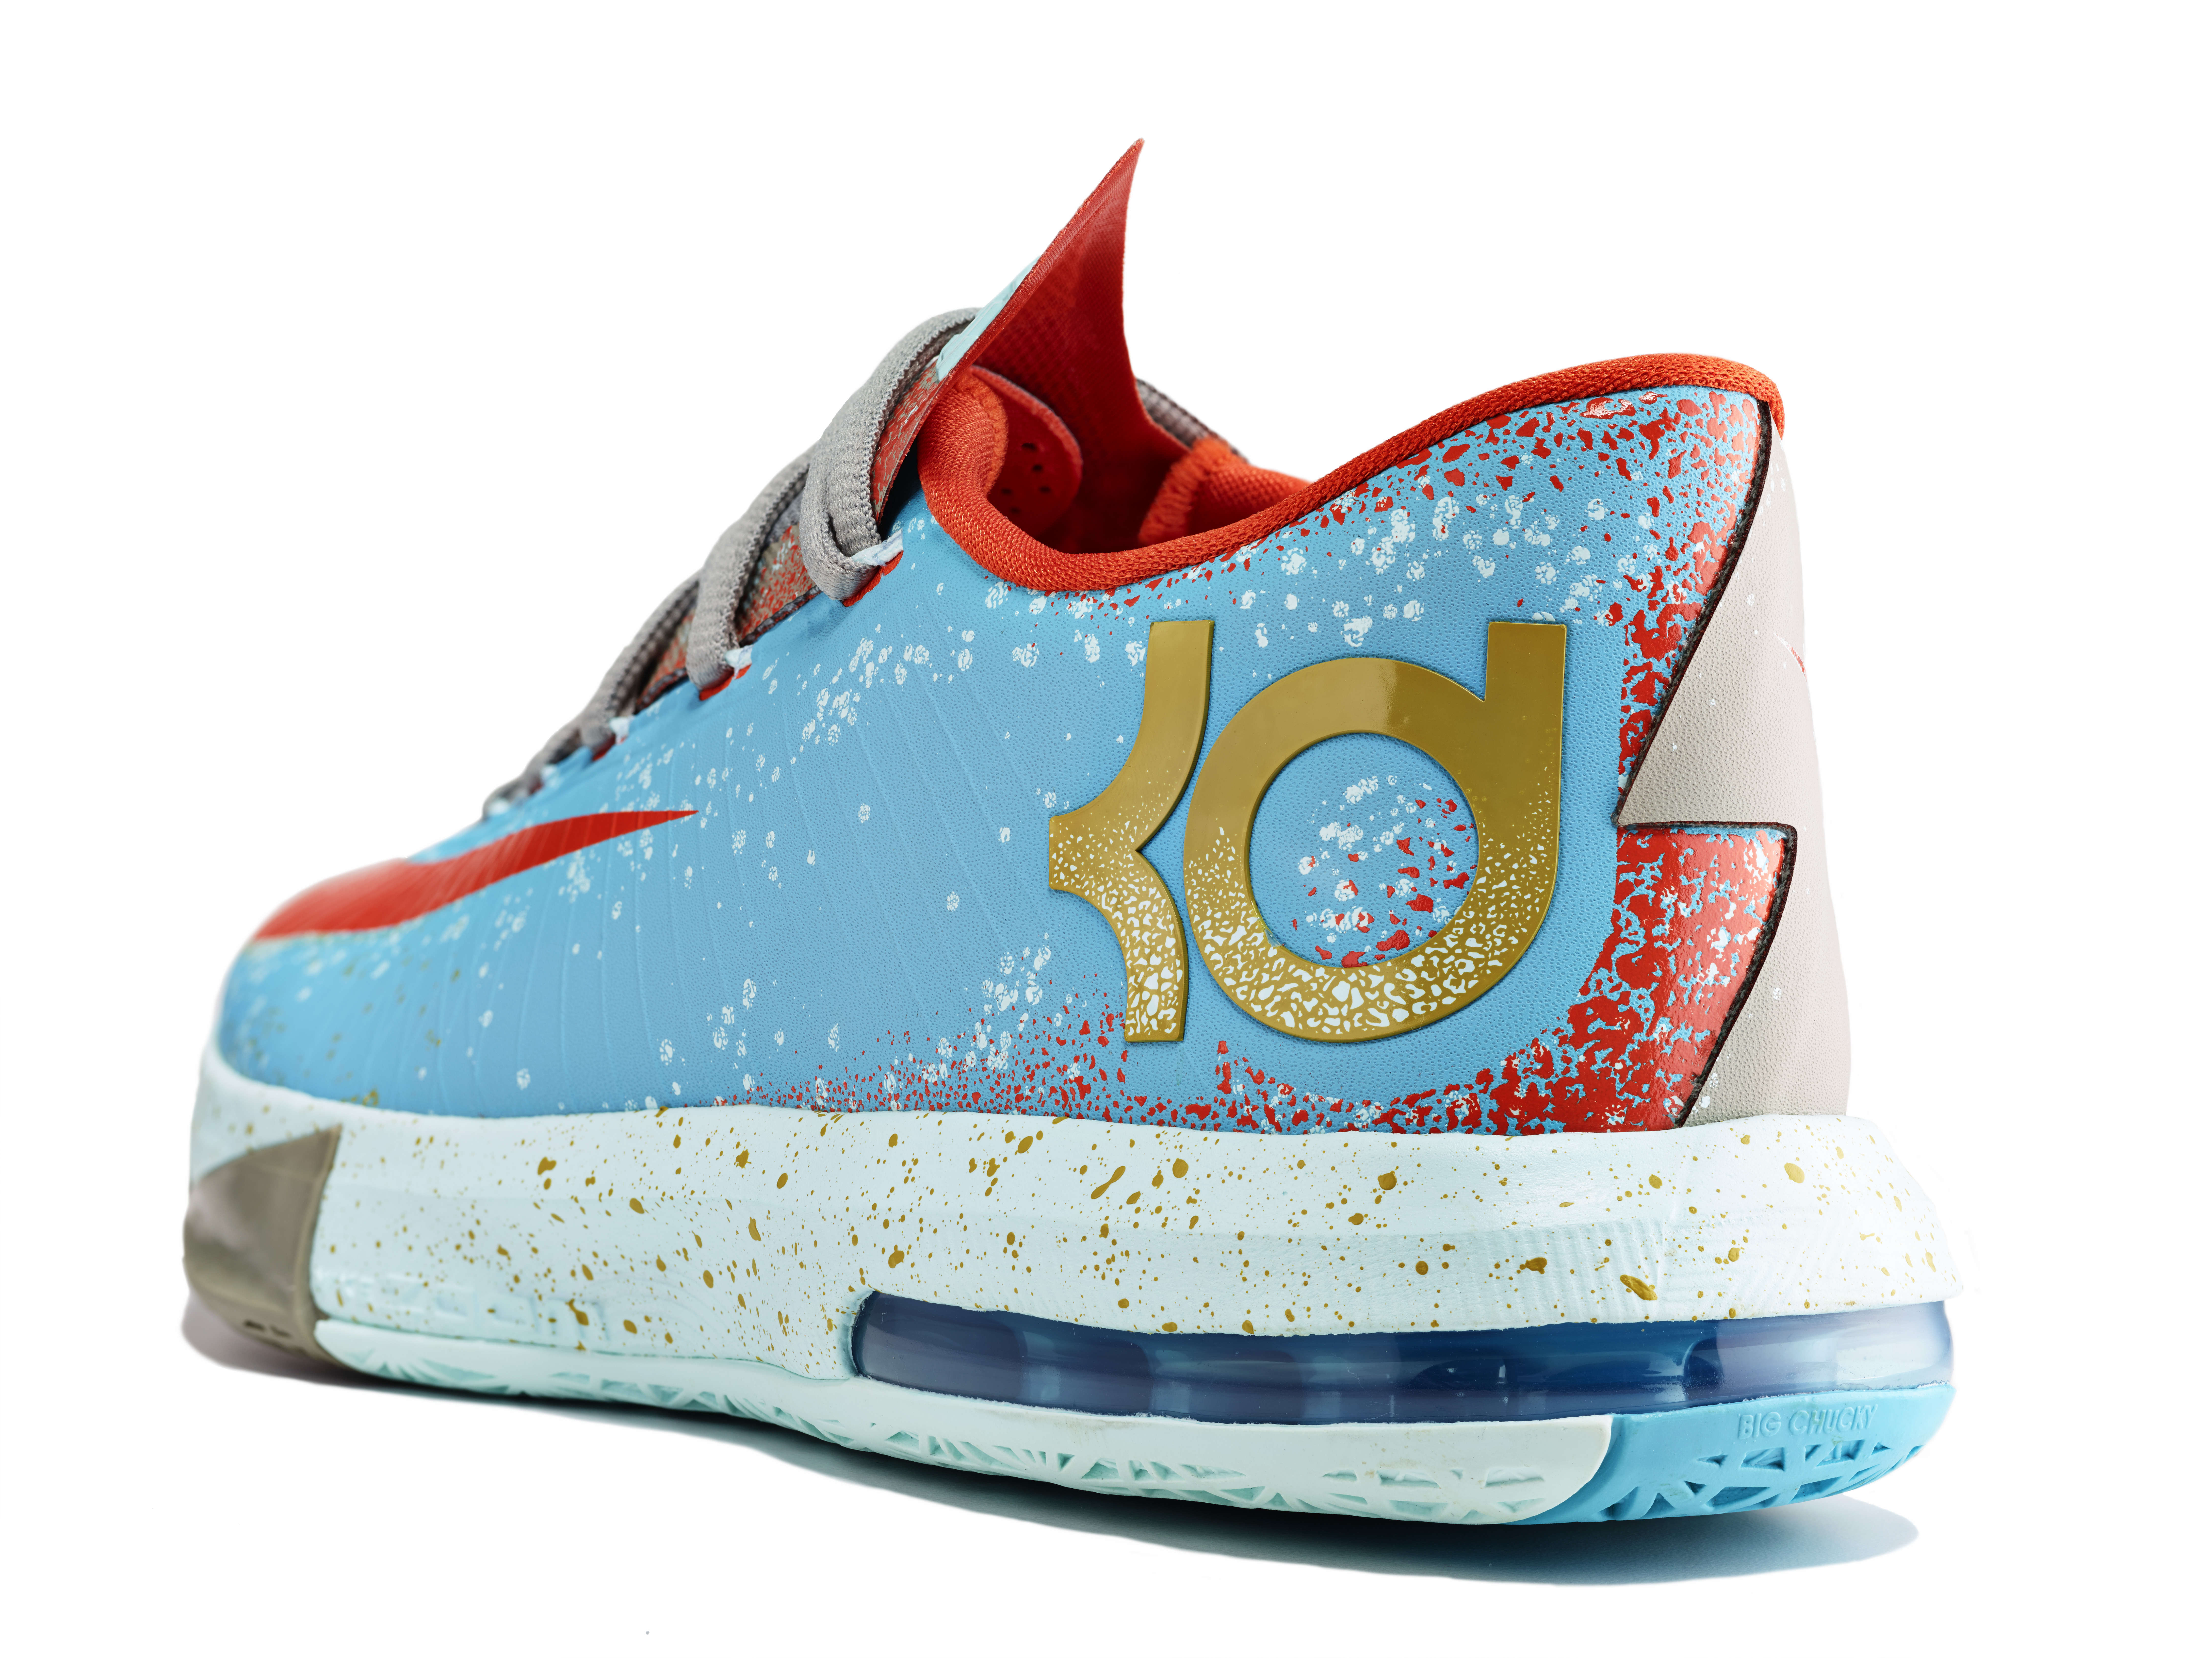 promo code ee6d2 767d2 KD VI Maryland Blue Crab  Appetite for Home - Nike News